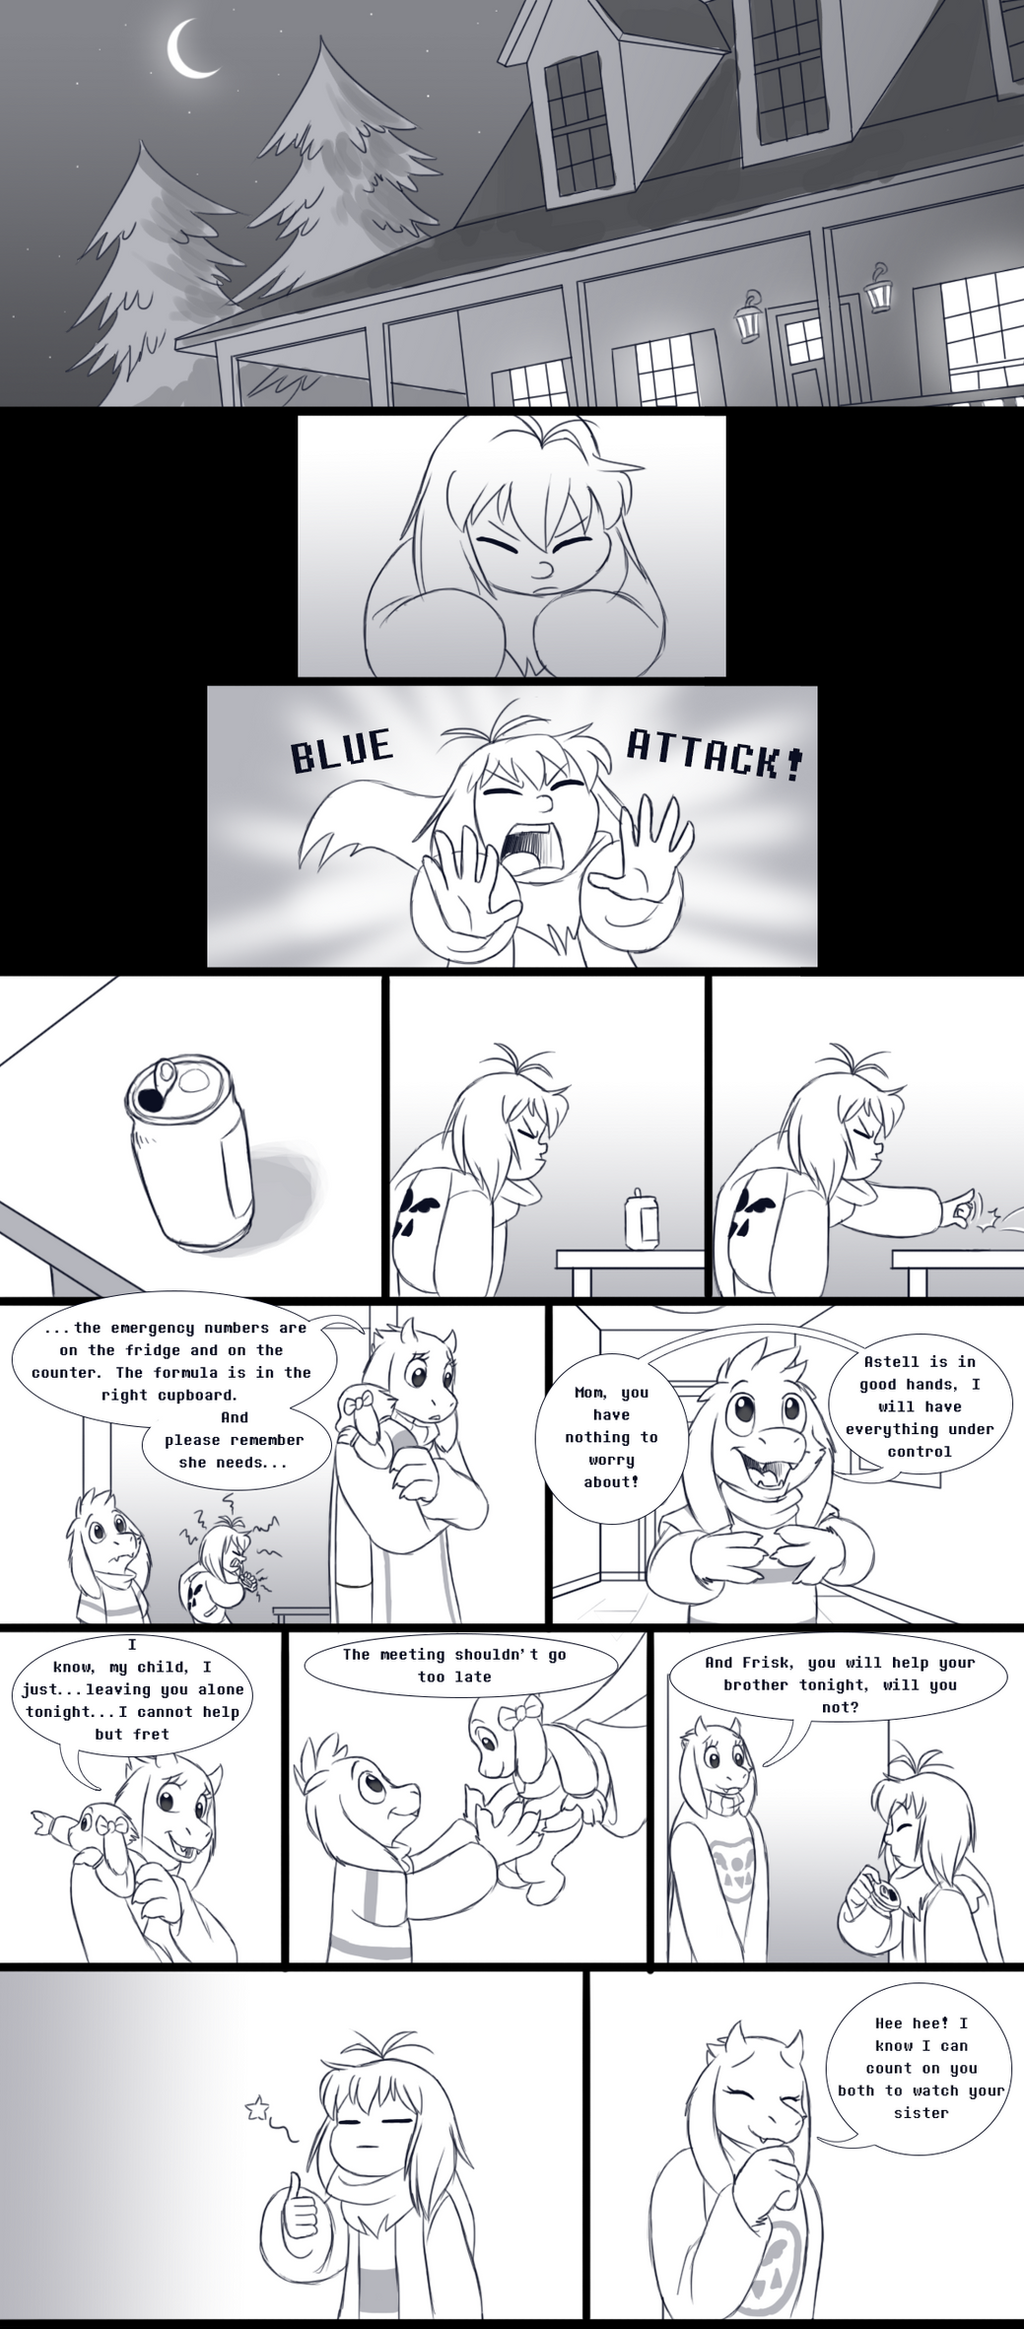 siblingtale babysitting page by tc on siblingtale babysitting page 1 by tc 96